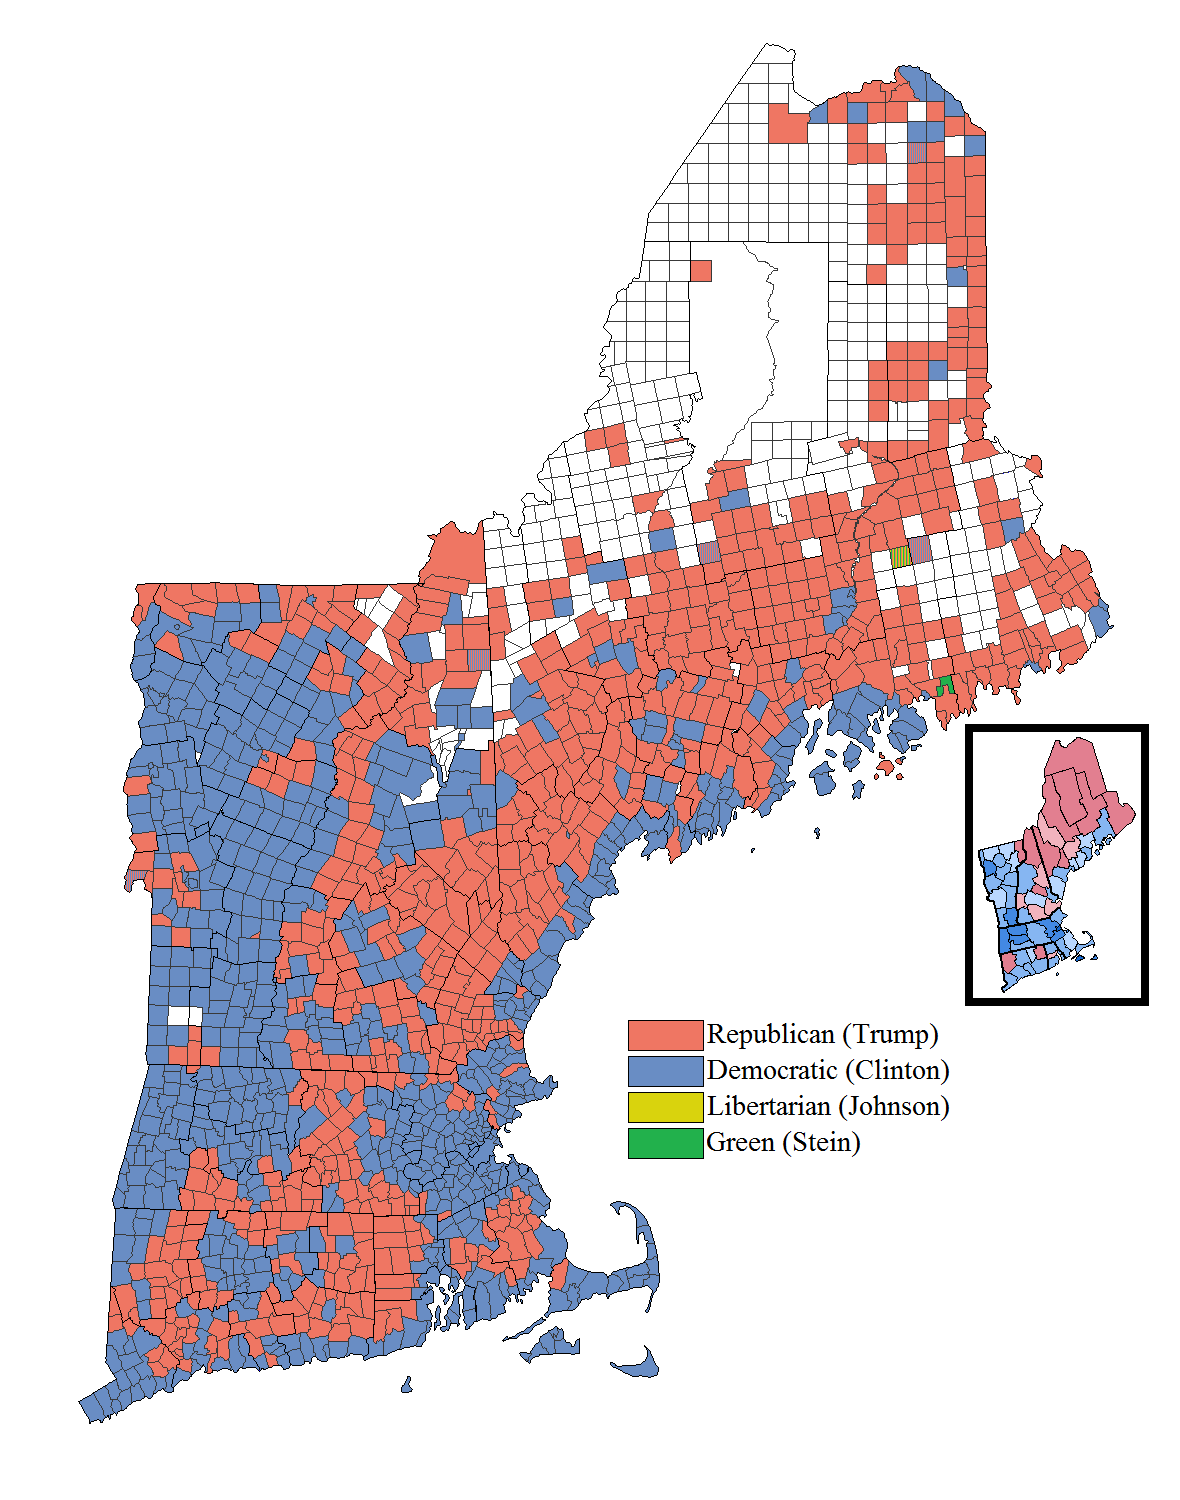 FileNew England Election Resultspng Wikimedia Commons - 2016 election us map results